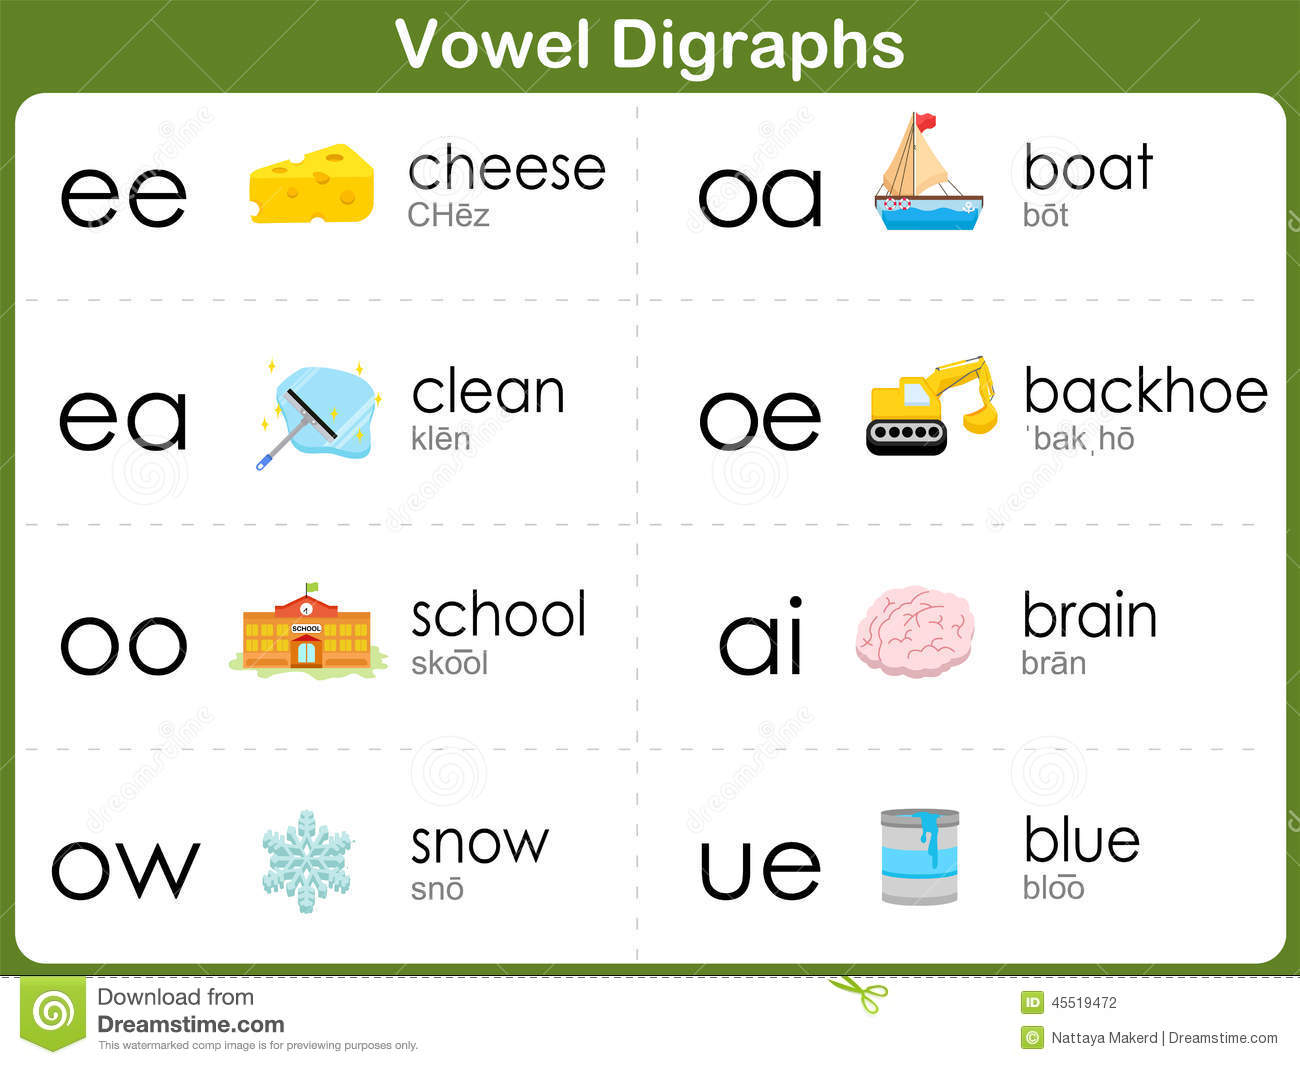 Vowel Digraphs Worksheet For Kids Stock Vector